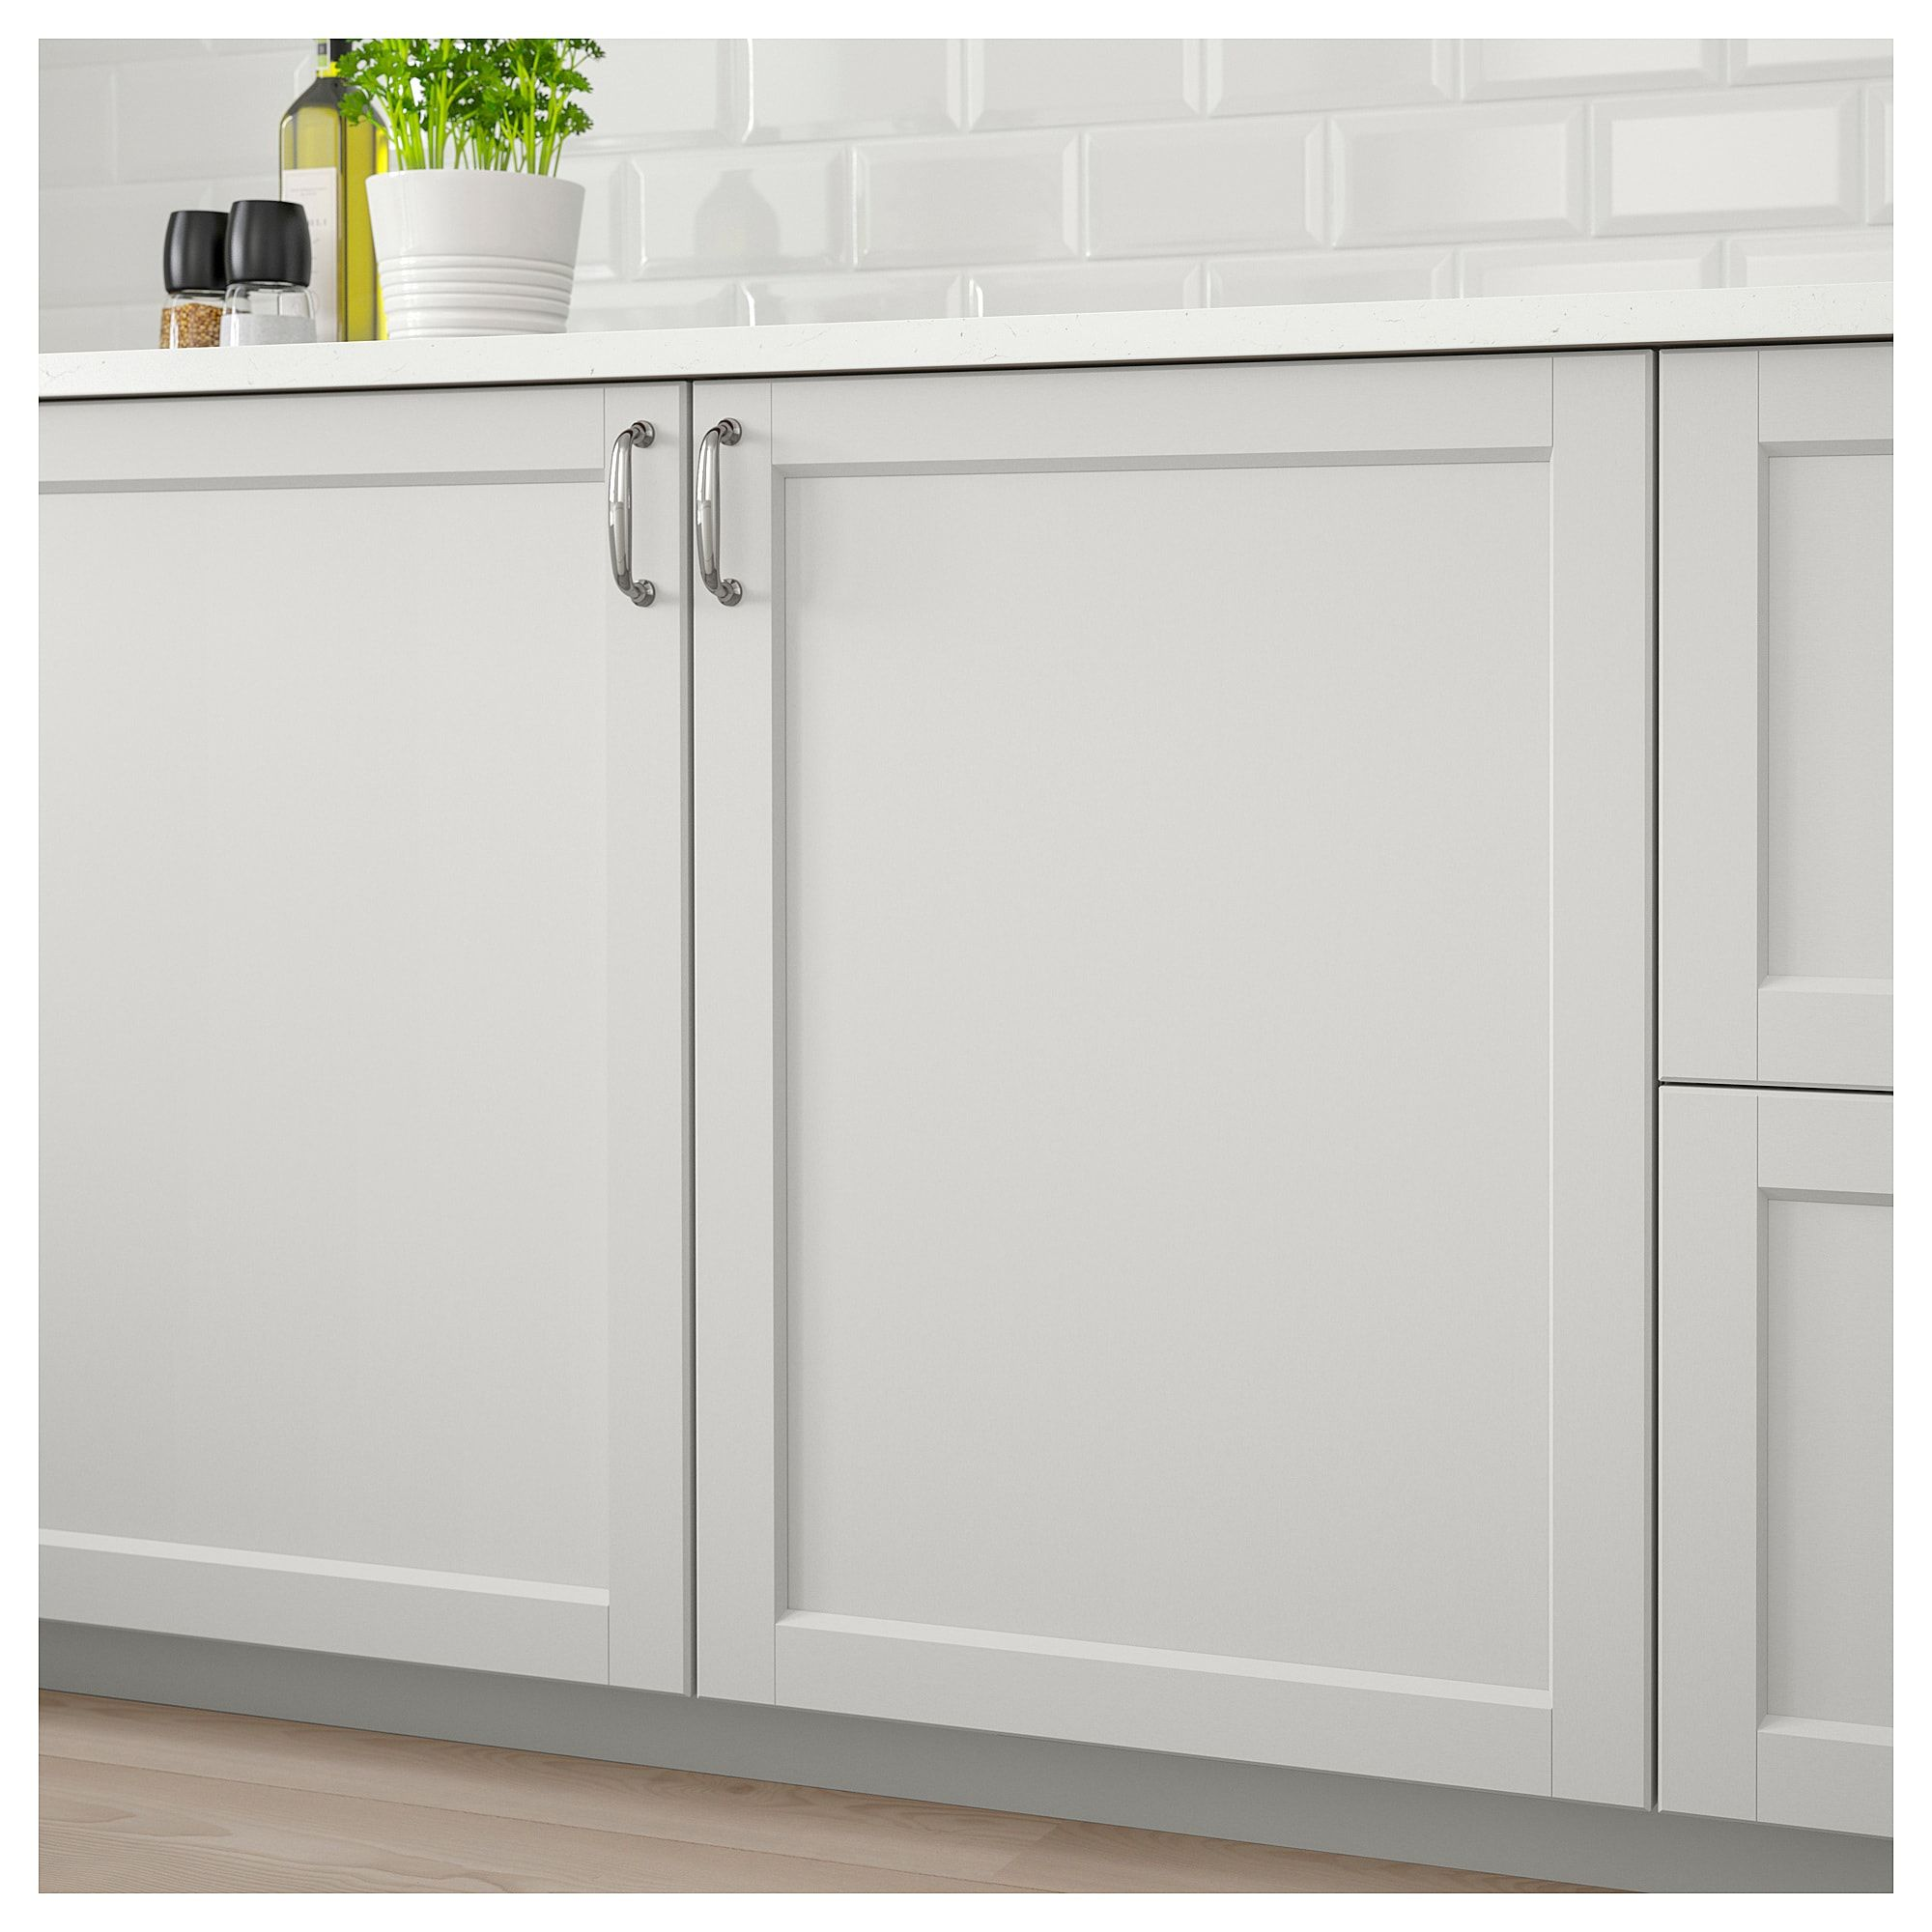 METOD Wall Cabinet With 2 Doors White/lerhyttan Light Grey IKEA